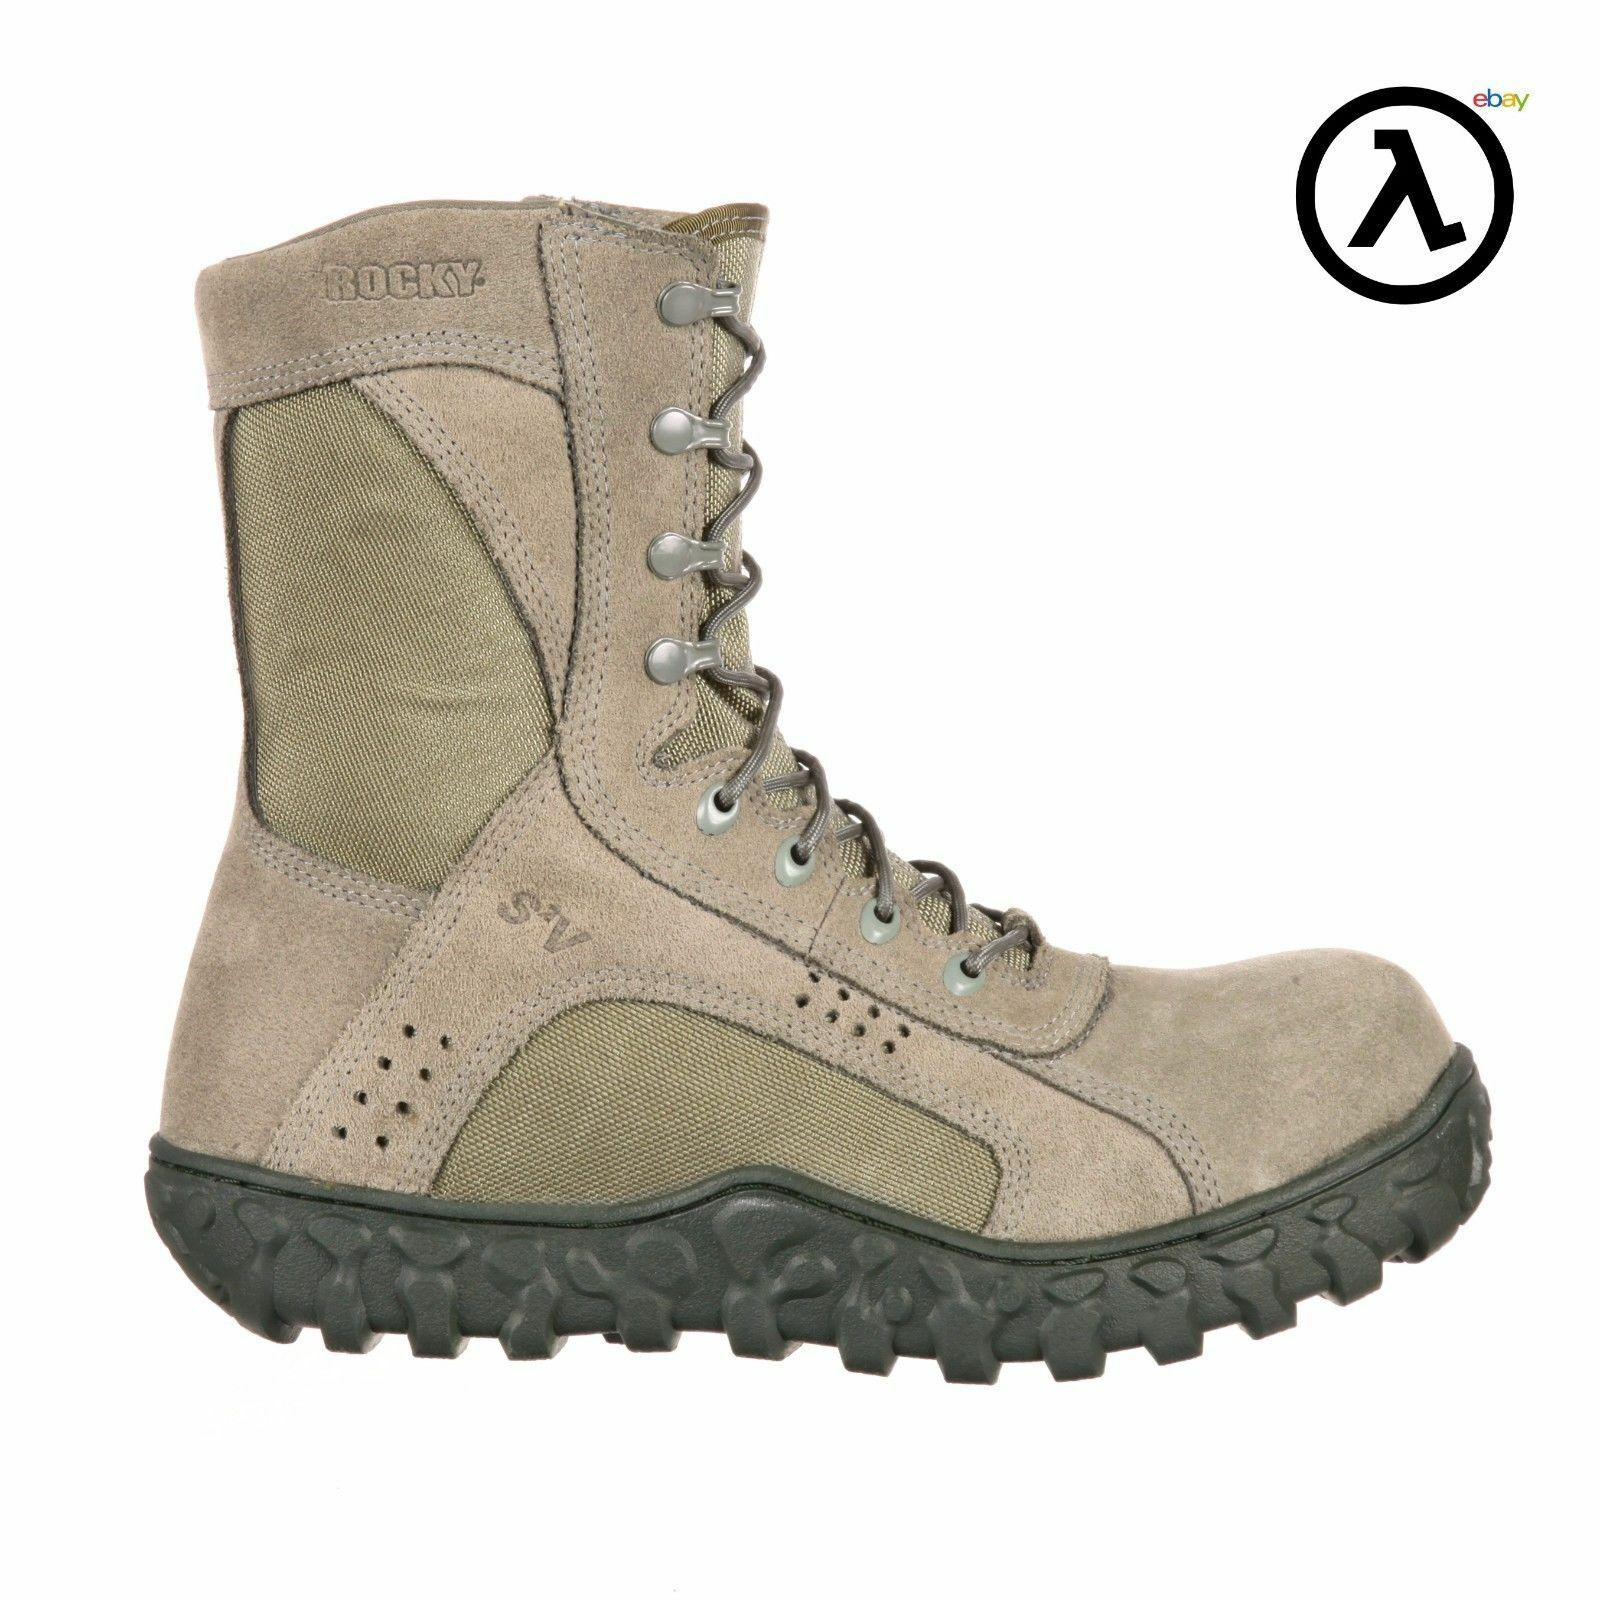 ROCKY S2V COMPOSITE TOE TACTICAL MILITARY BOOTS RKYC027 - ALL SIZES - SALE